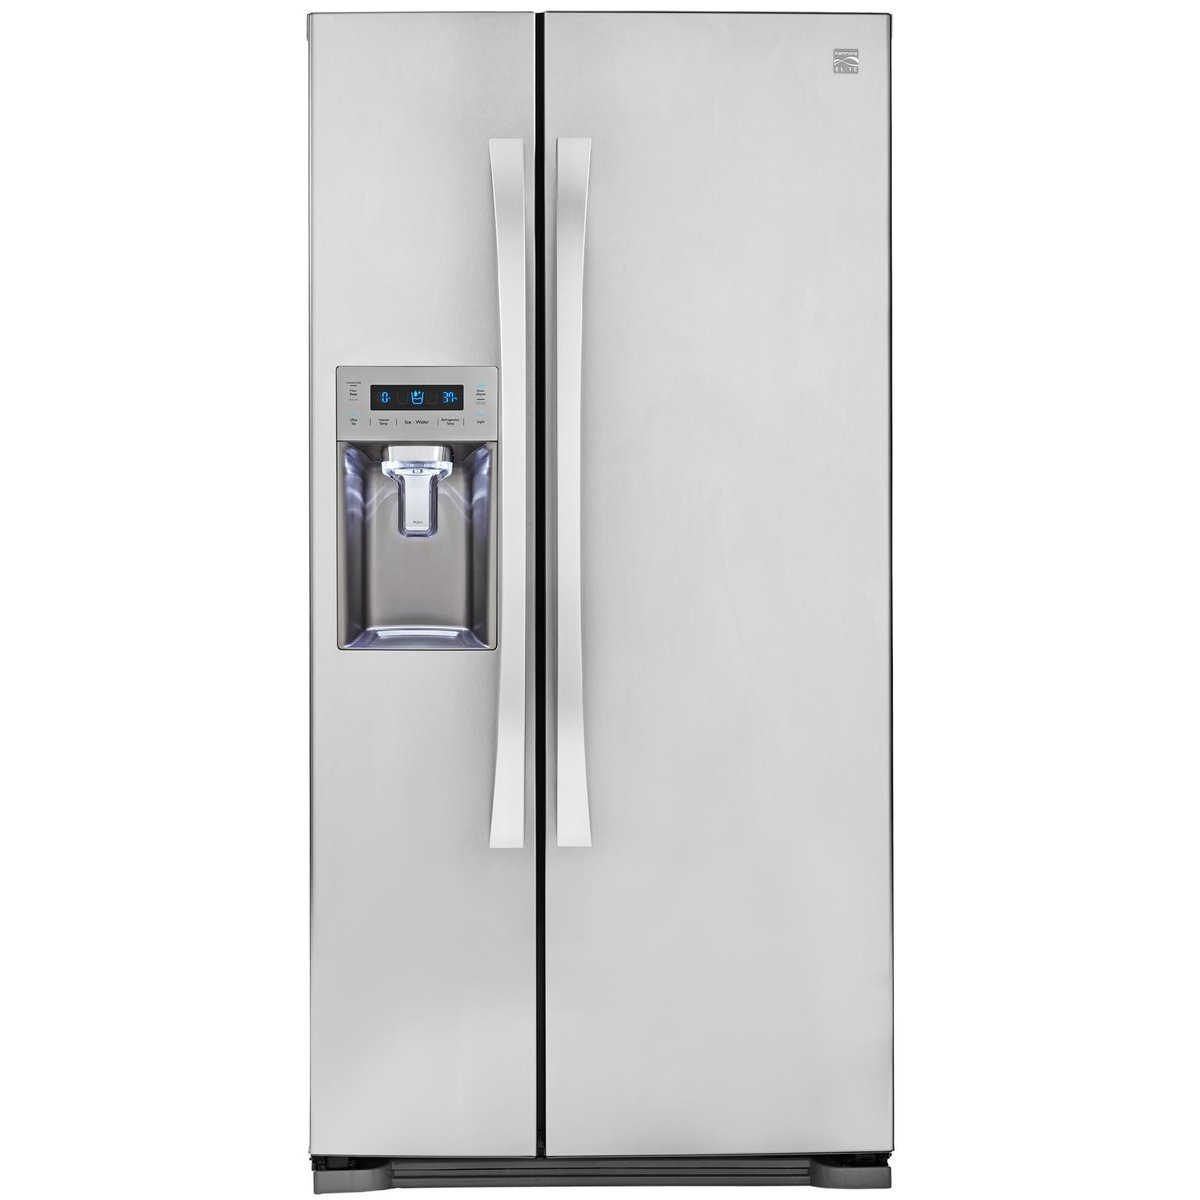 Kenmore Elite 51823 21.9 cu. ft. Side-by-Side Refrigerator in Stainless Steel, includes delivery and hookup (Available in select cities only)